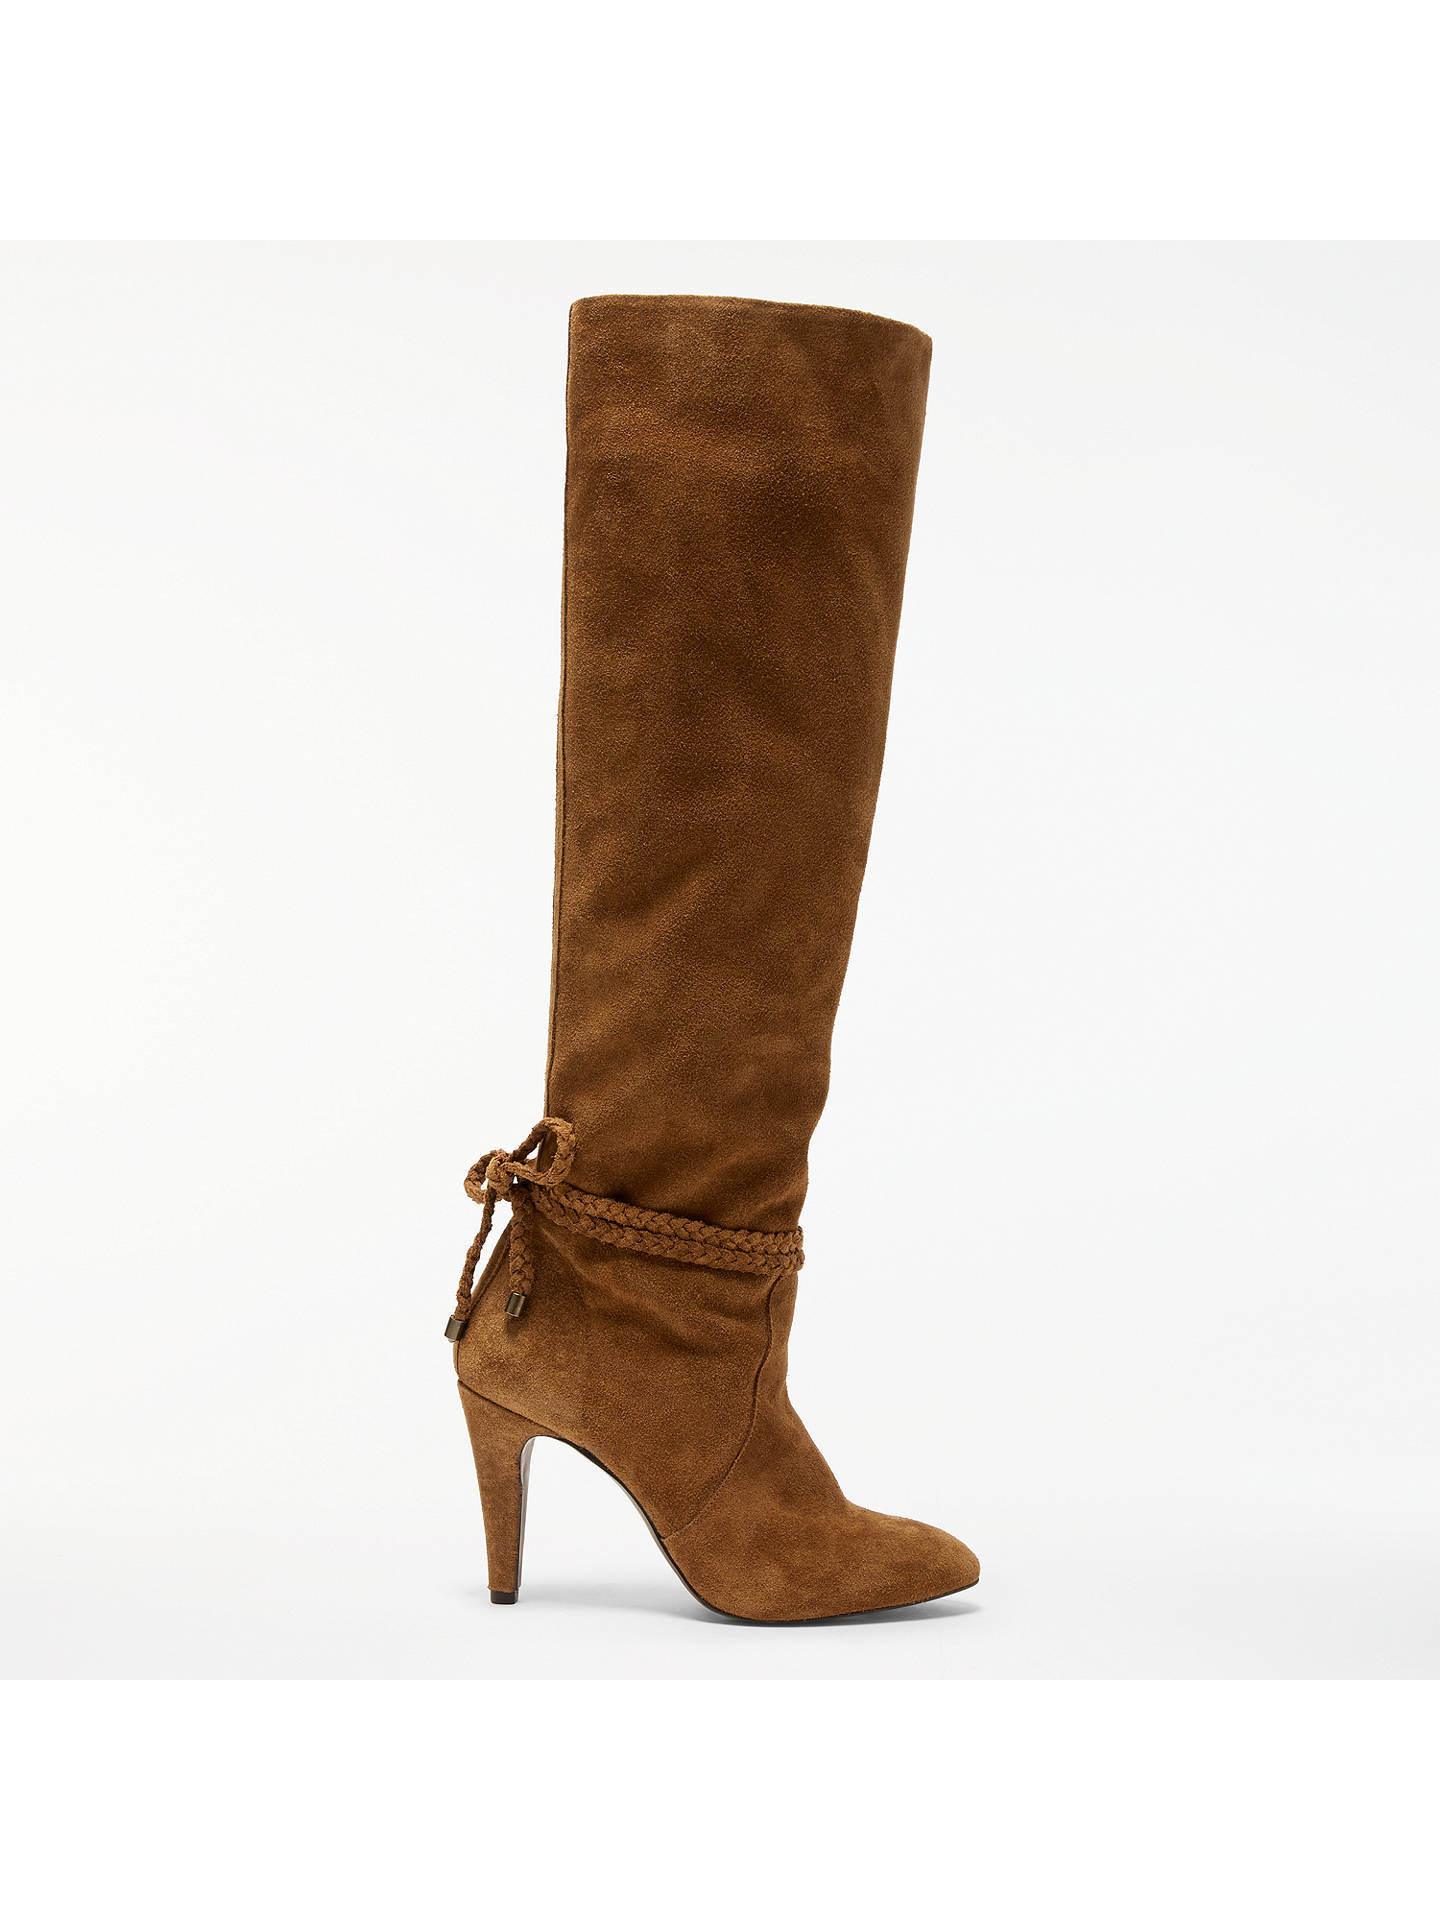 311dcdae46861 AND/OR Sancia Knee High Slouch Boots, Tan Suede at John Lewis & Partners